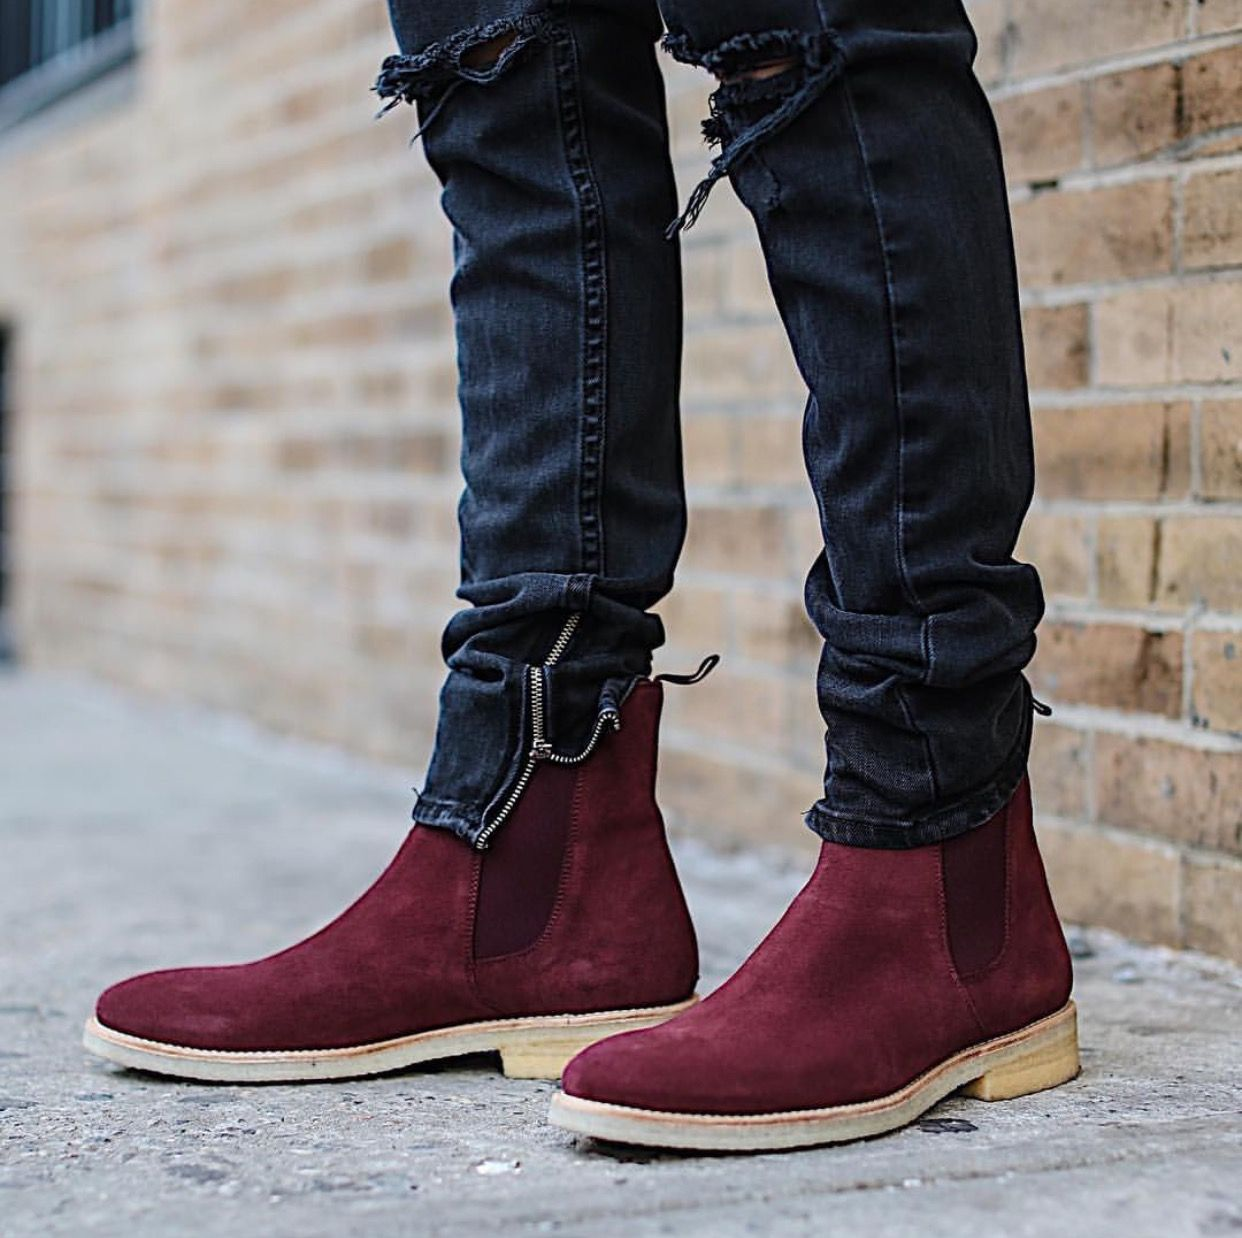 6295fa65da623 Pin by Bethany Galford on Outfits | Ankle boots men, Chelsea boots ...